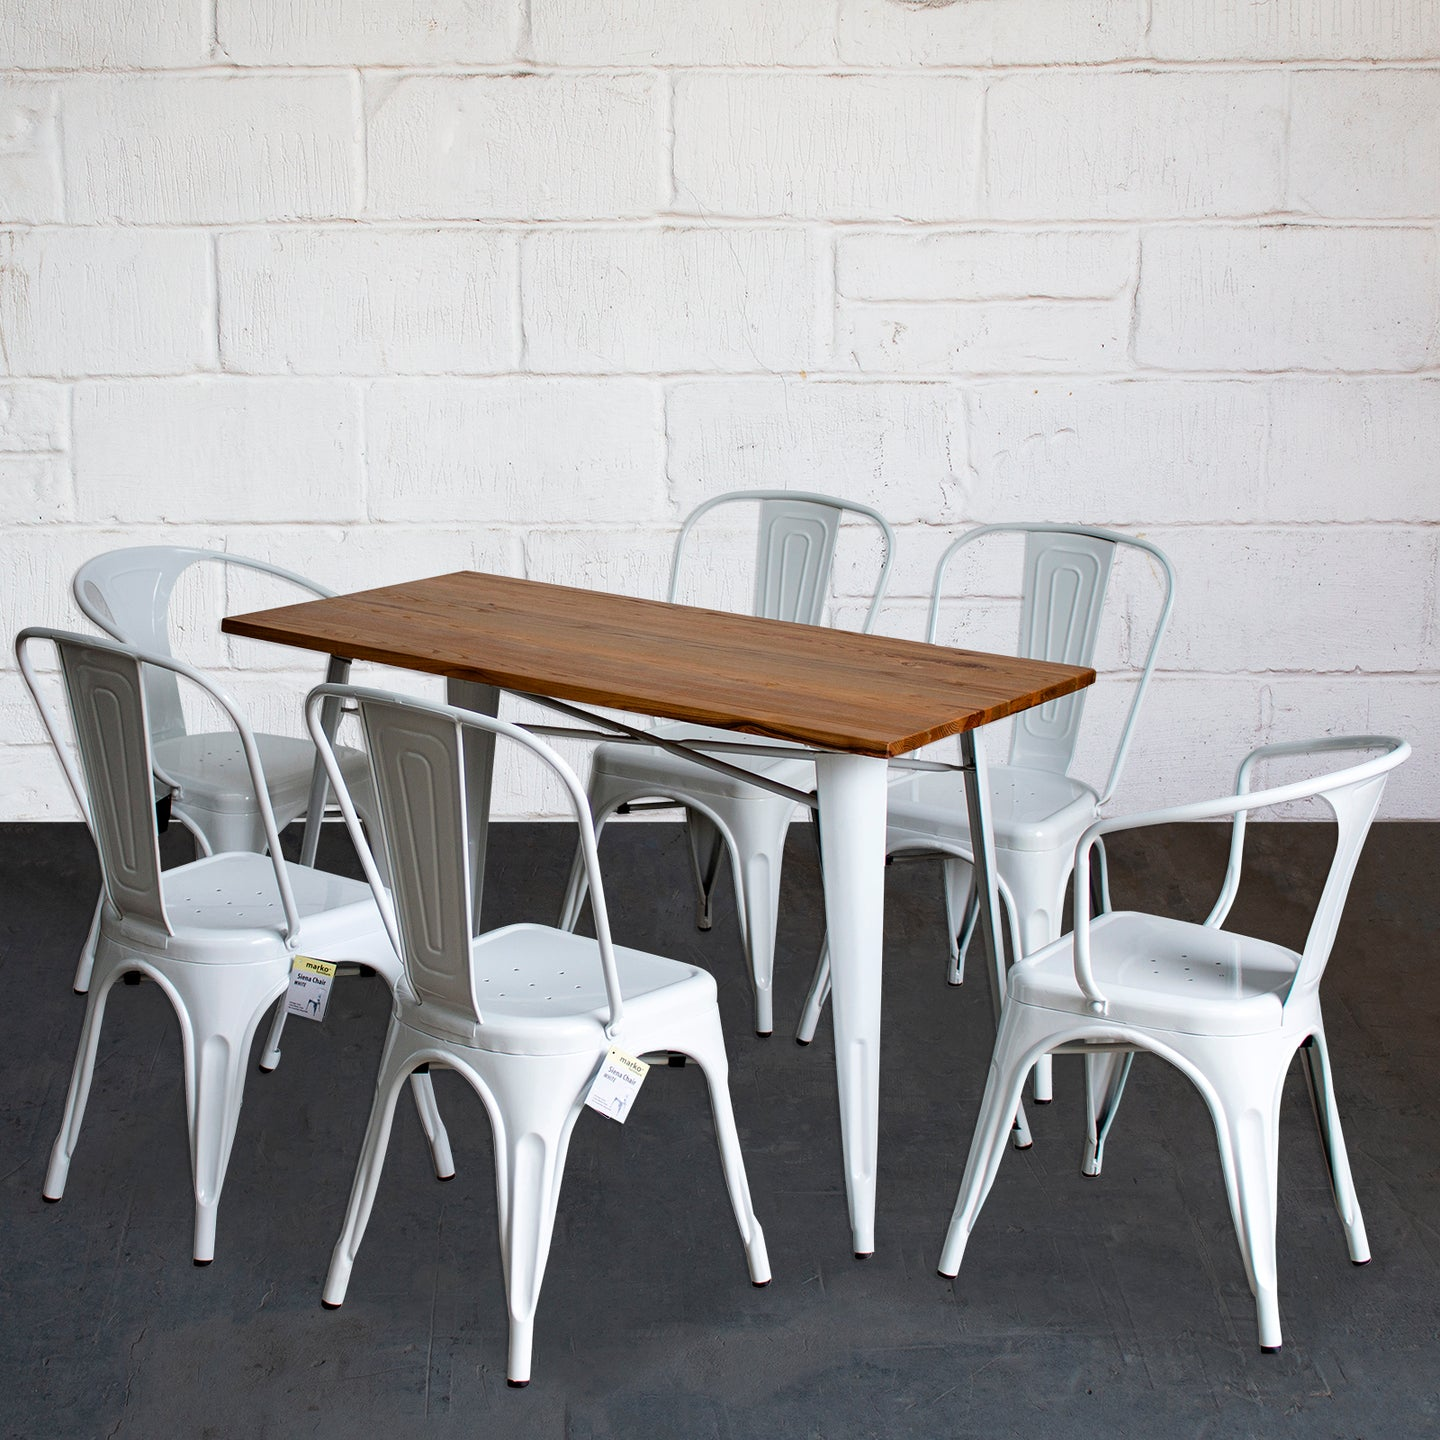 7PC Prato Table, 2 Forli & 4 Siena Chairs Set - White